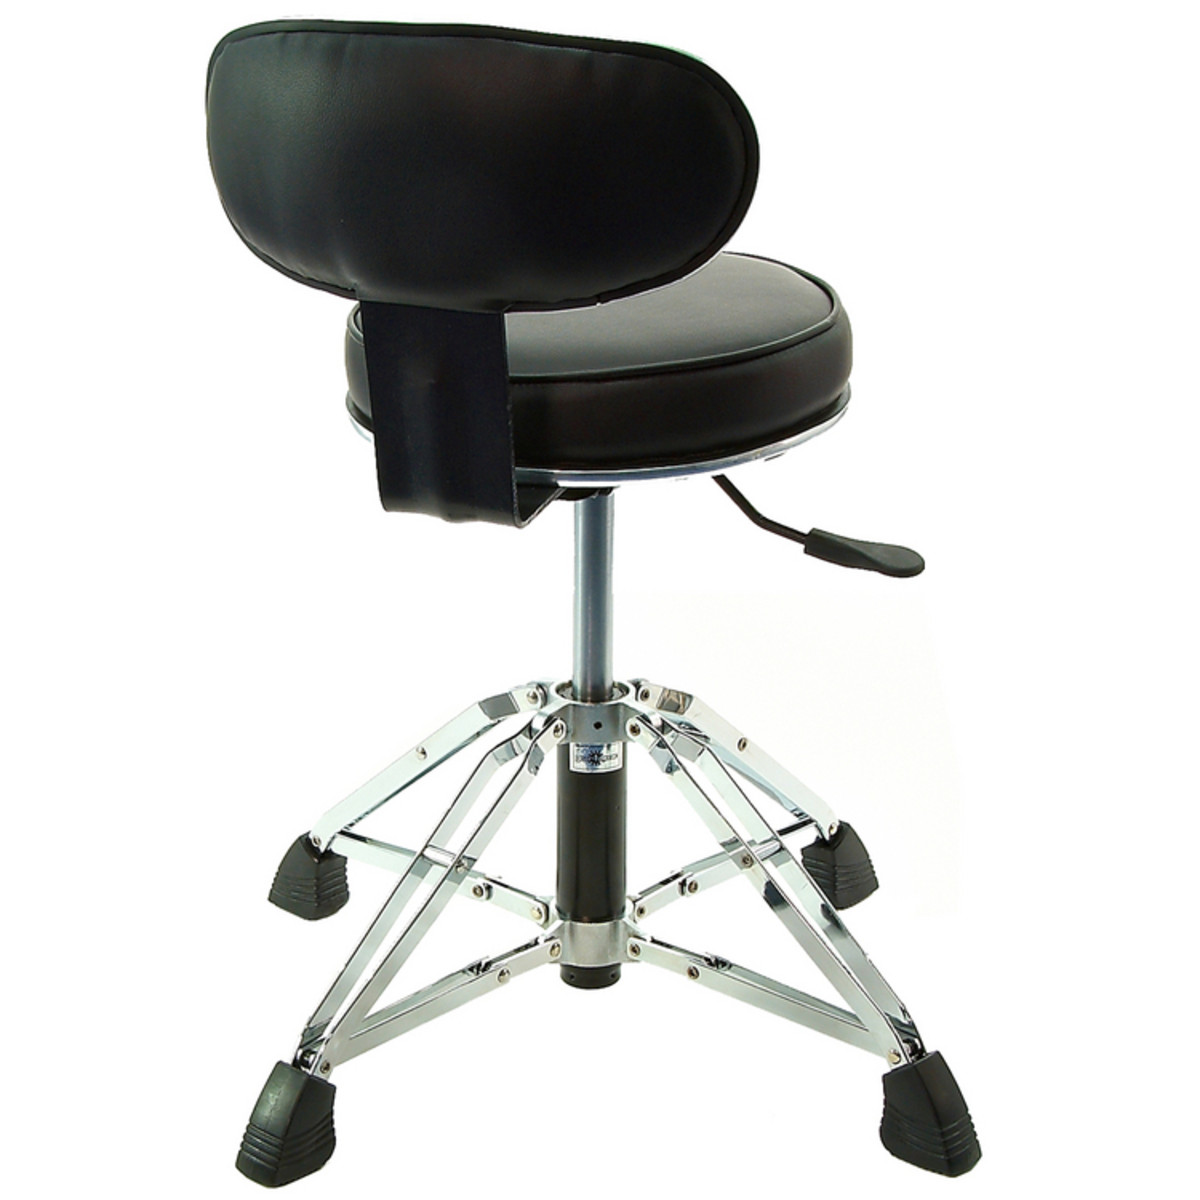 Drum Chair High Grade Drum Throne With Backrest At Gear4music